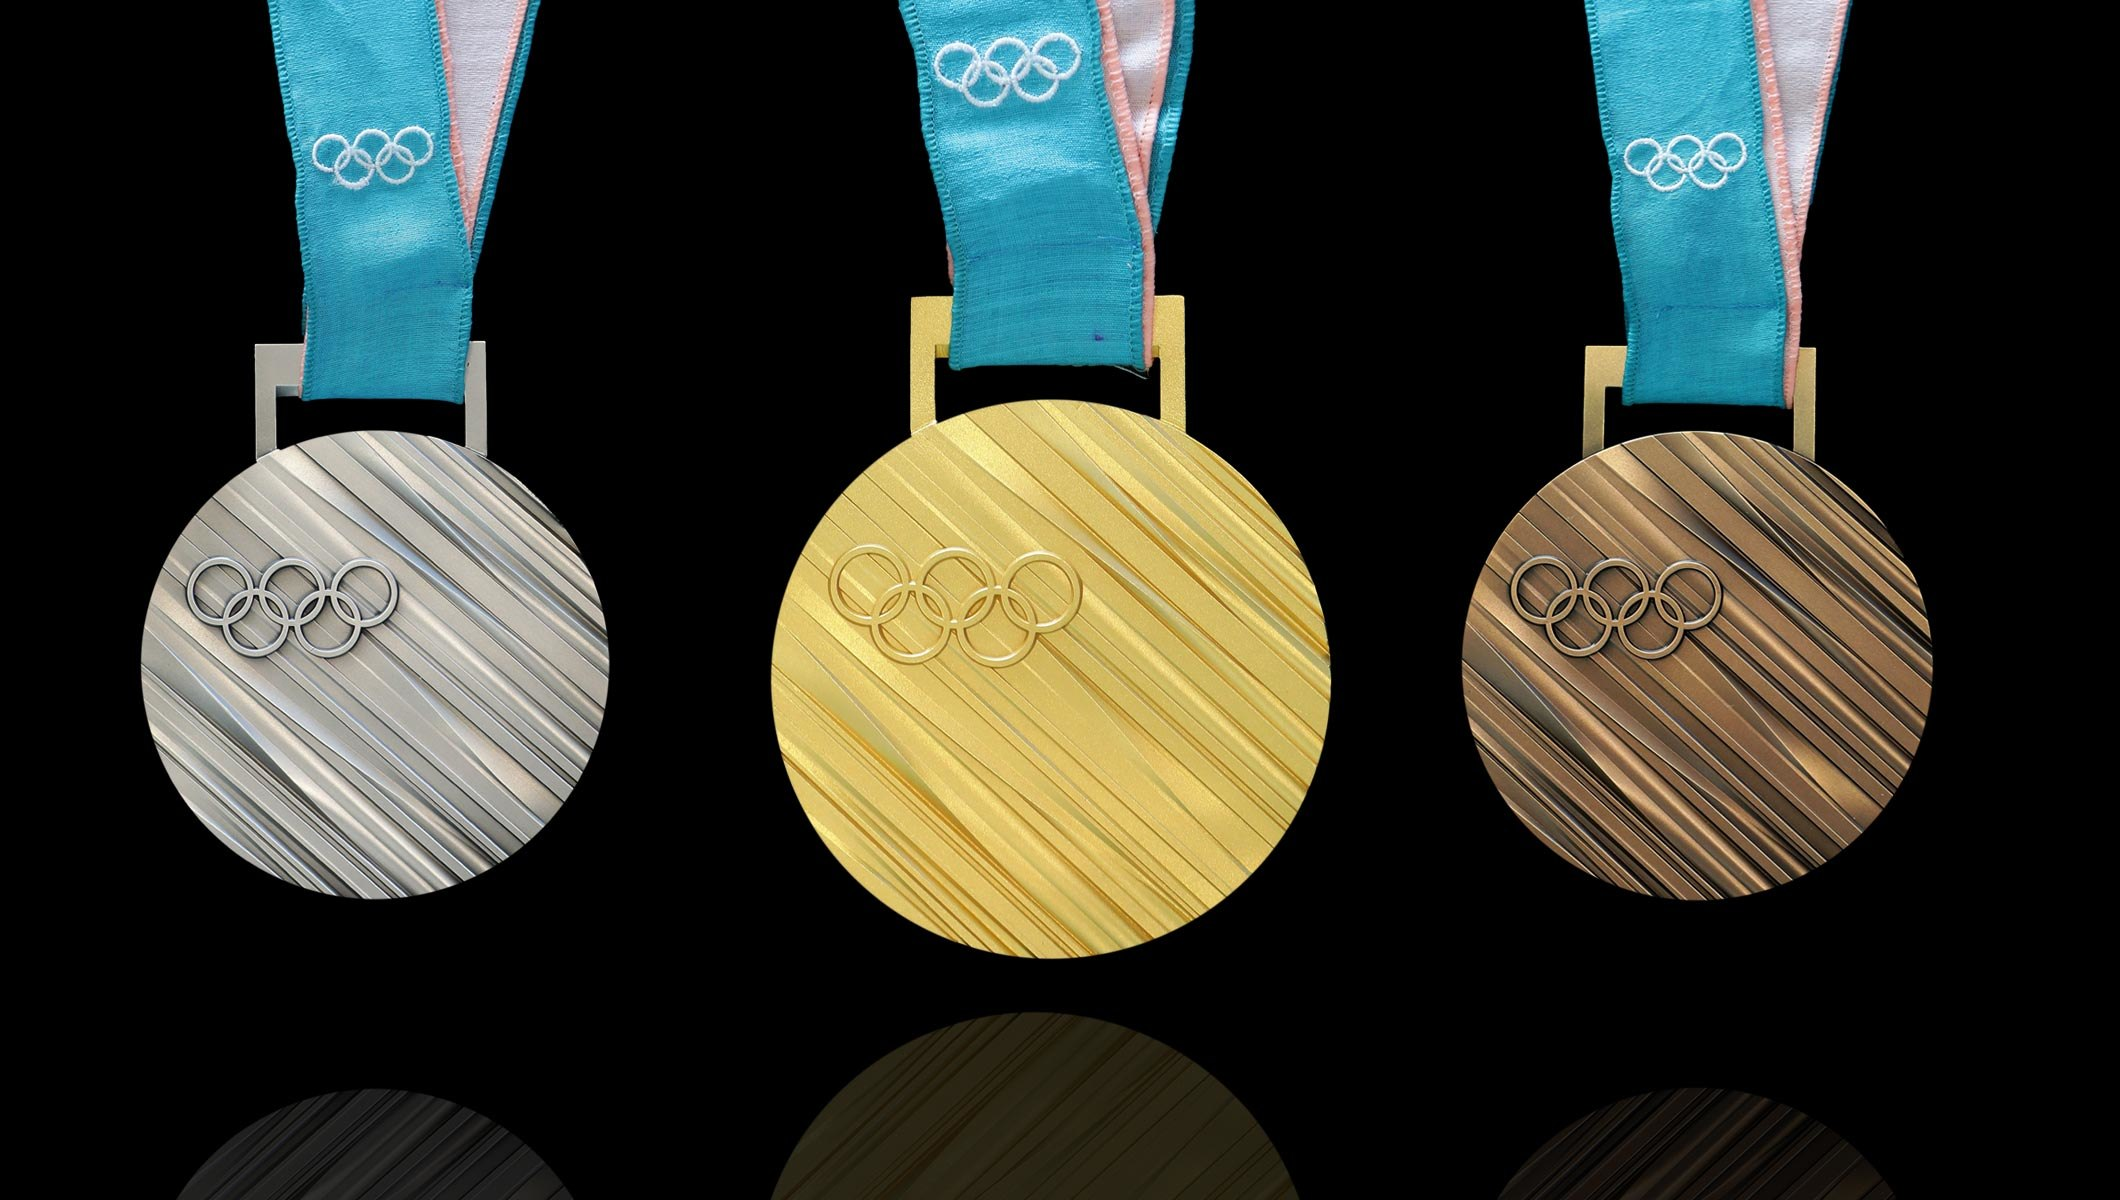 Medals of PyeongChang Winter Olympics 2018